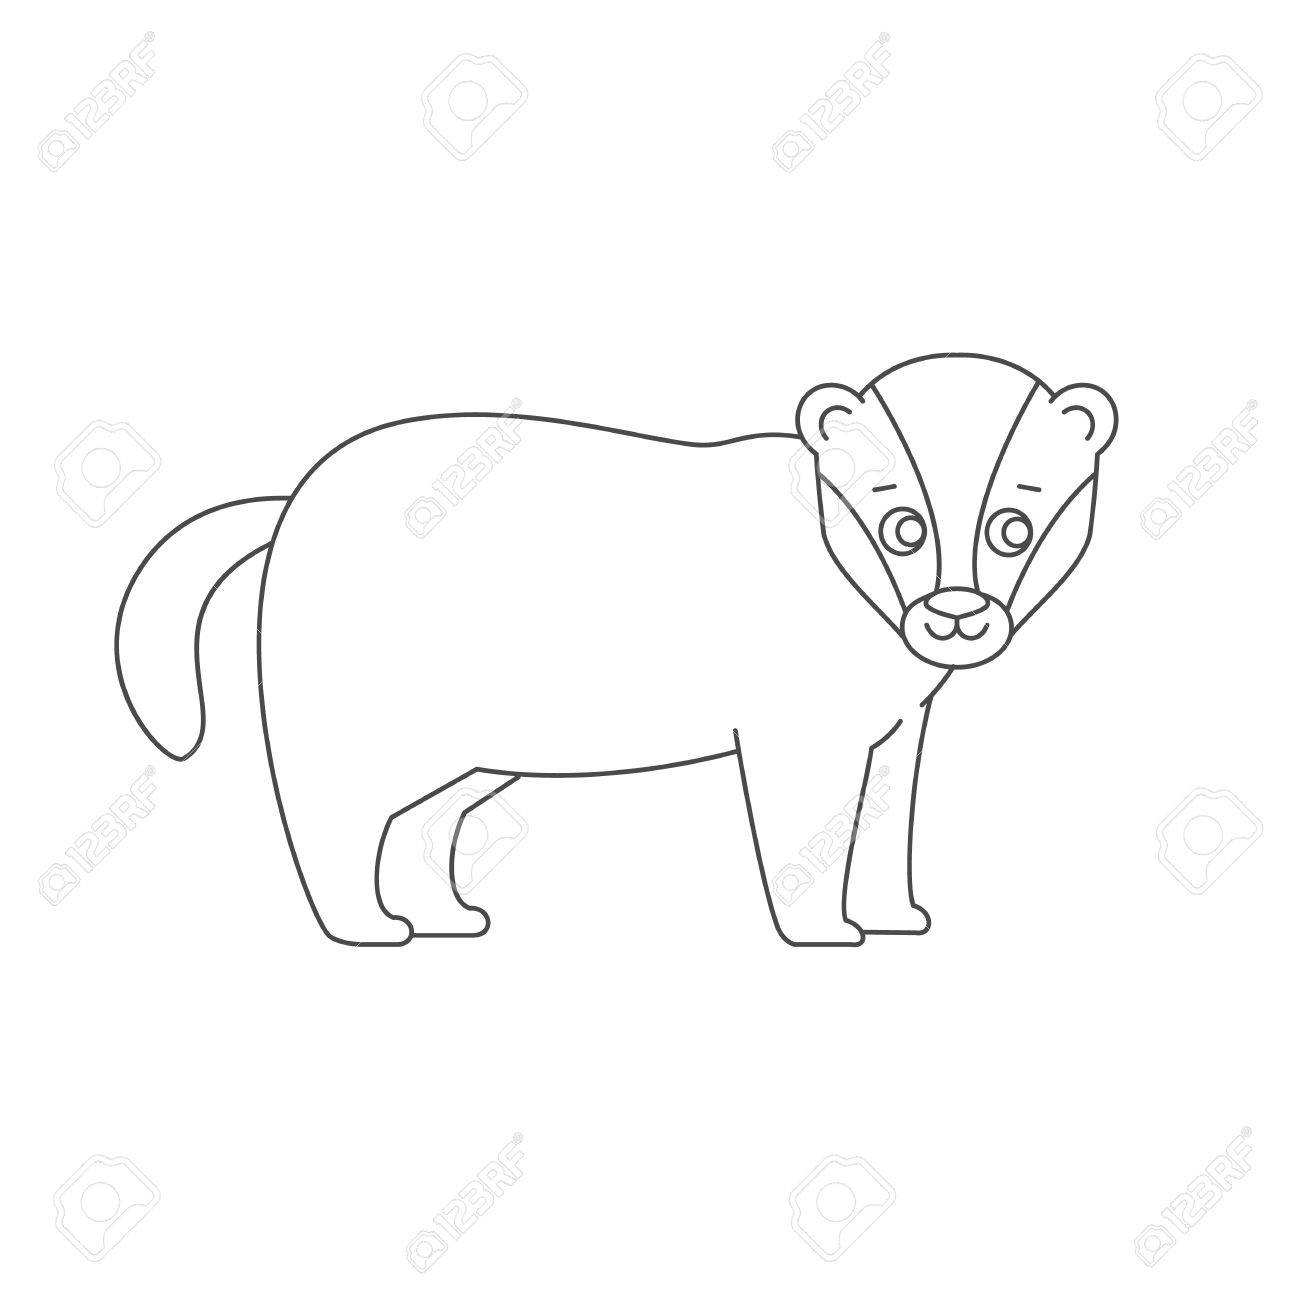 1300x1300 Badger For Coloring Book Stock Photo, Picture And Royalty Free